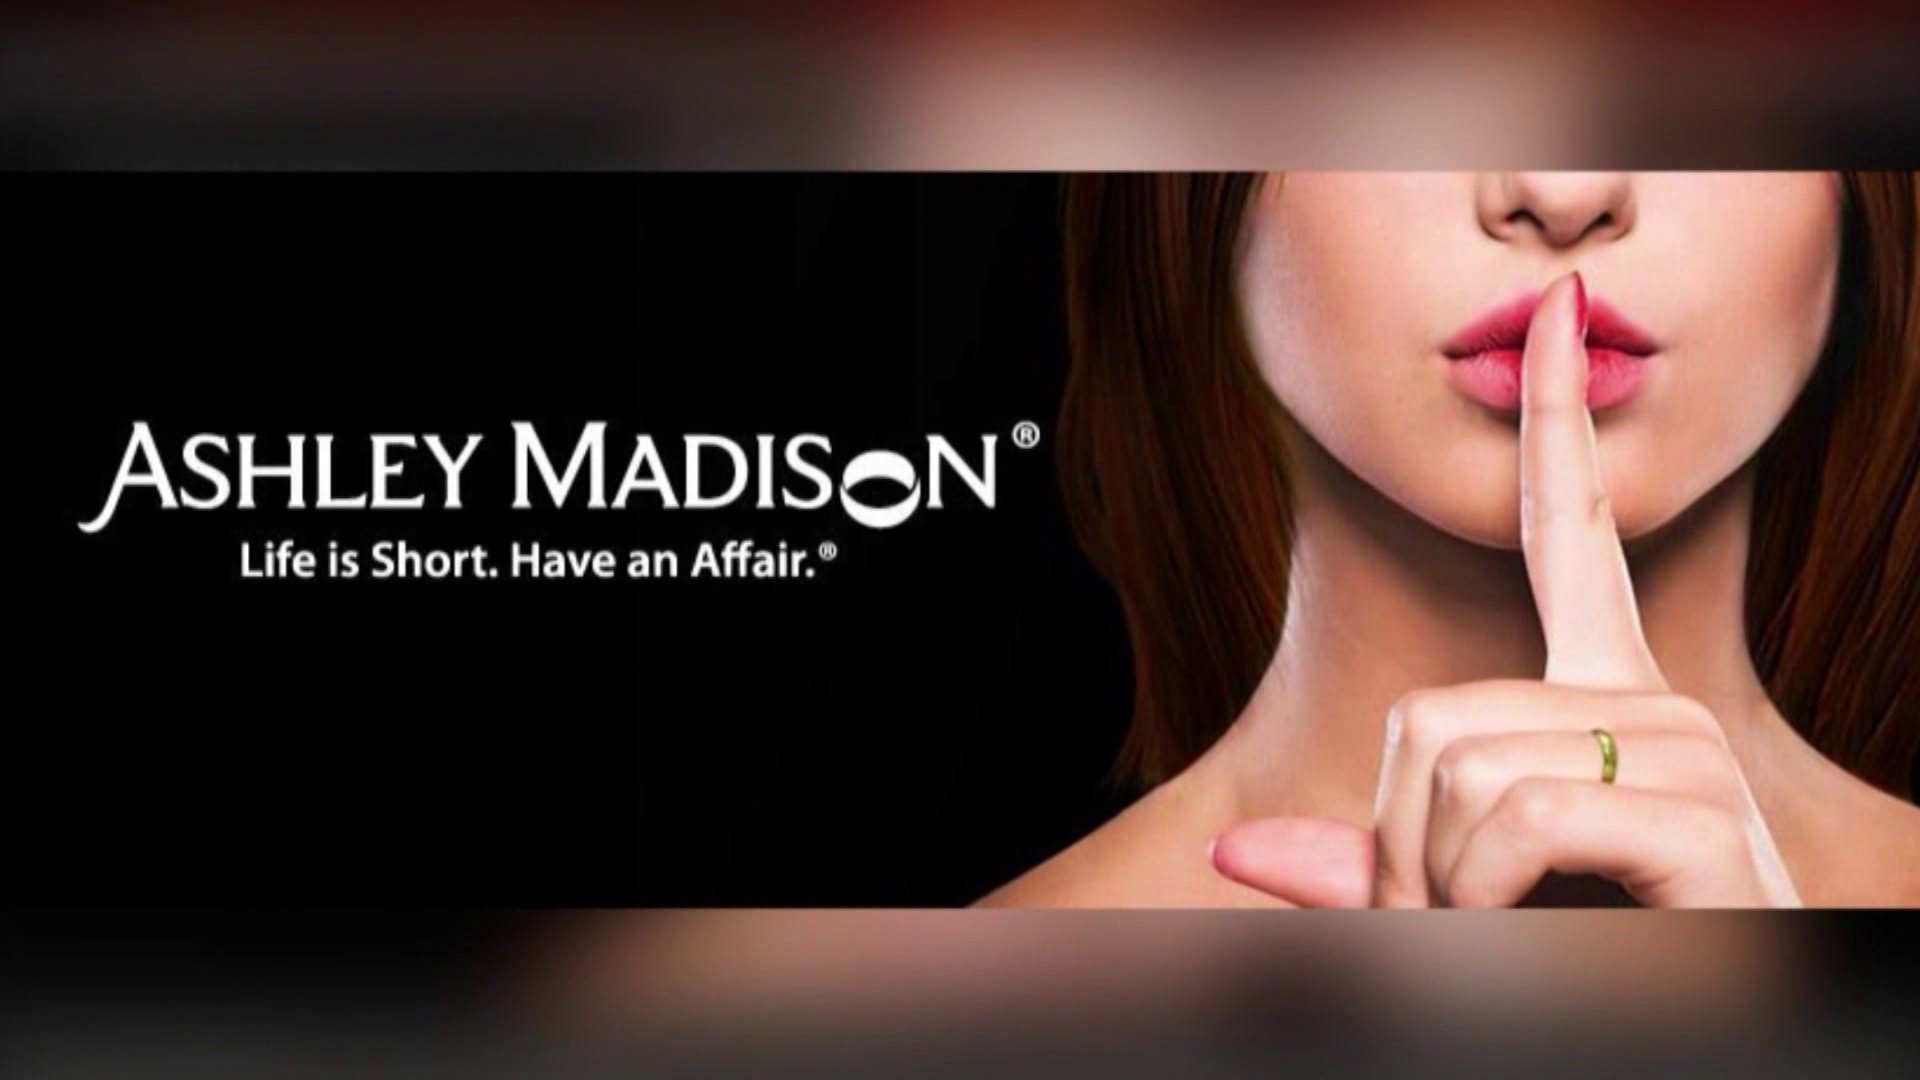 ashley madison is back different bosses security forum ashley madison is back different bosses security forum david firester